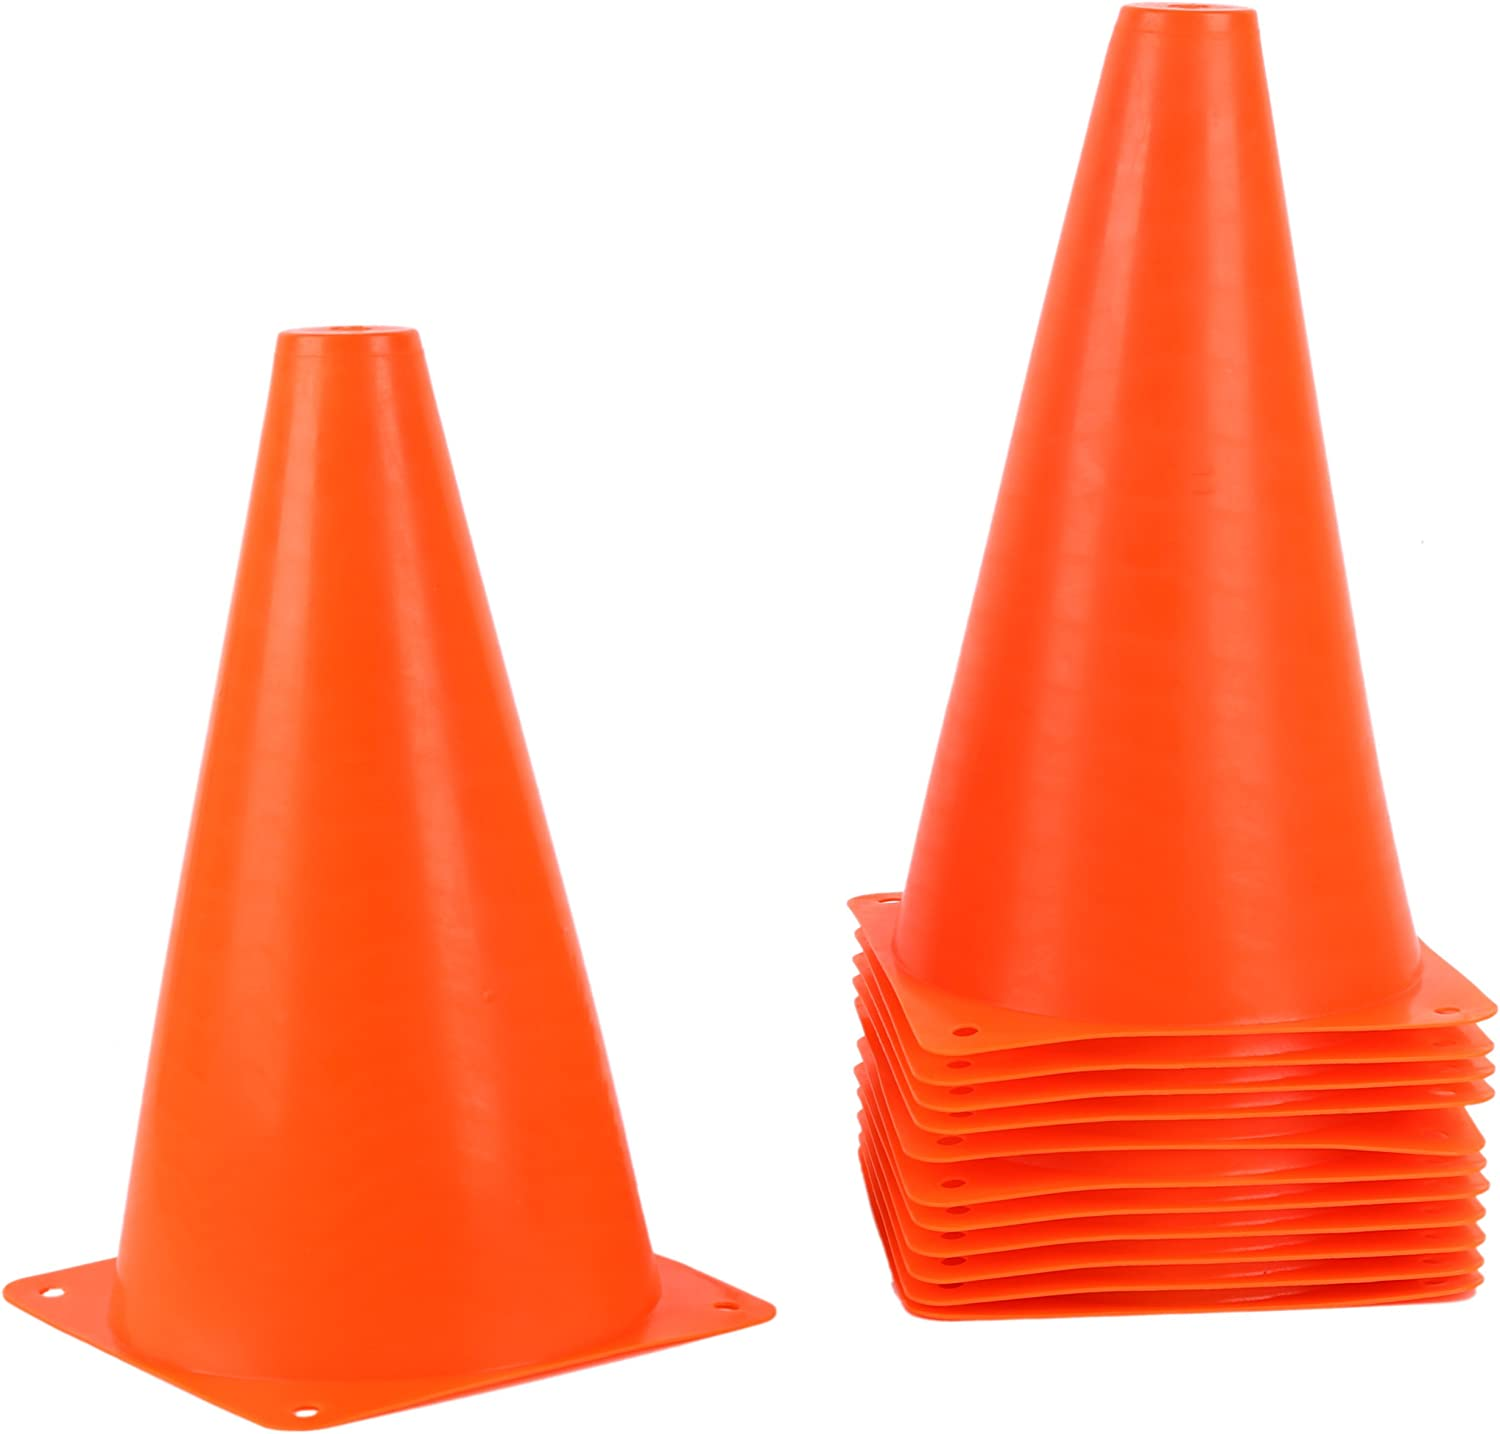 Juvale 9 Inch Orange Plastic Sports Safety Parking Cones (12 Pack) : Sports & Outdoors